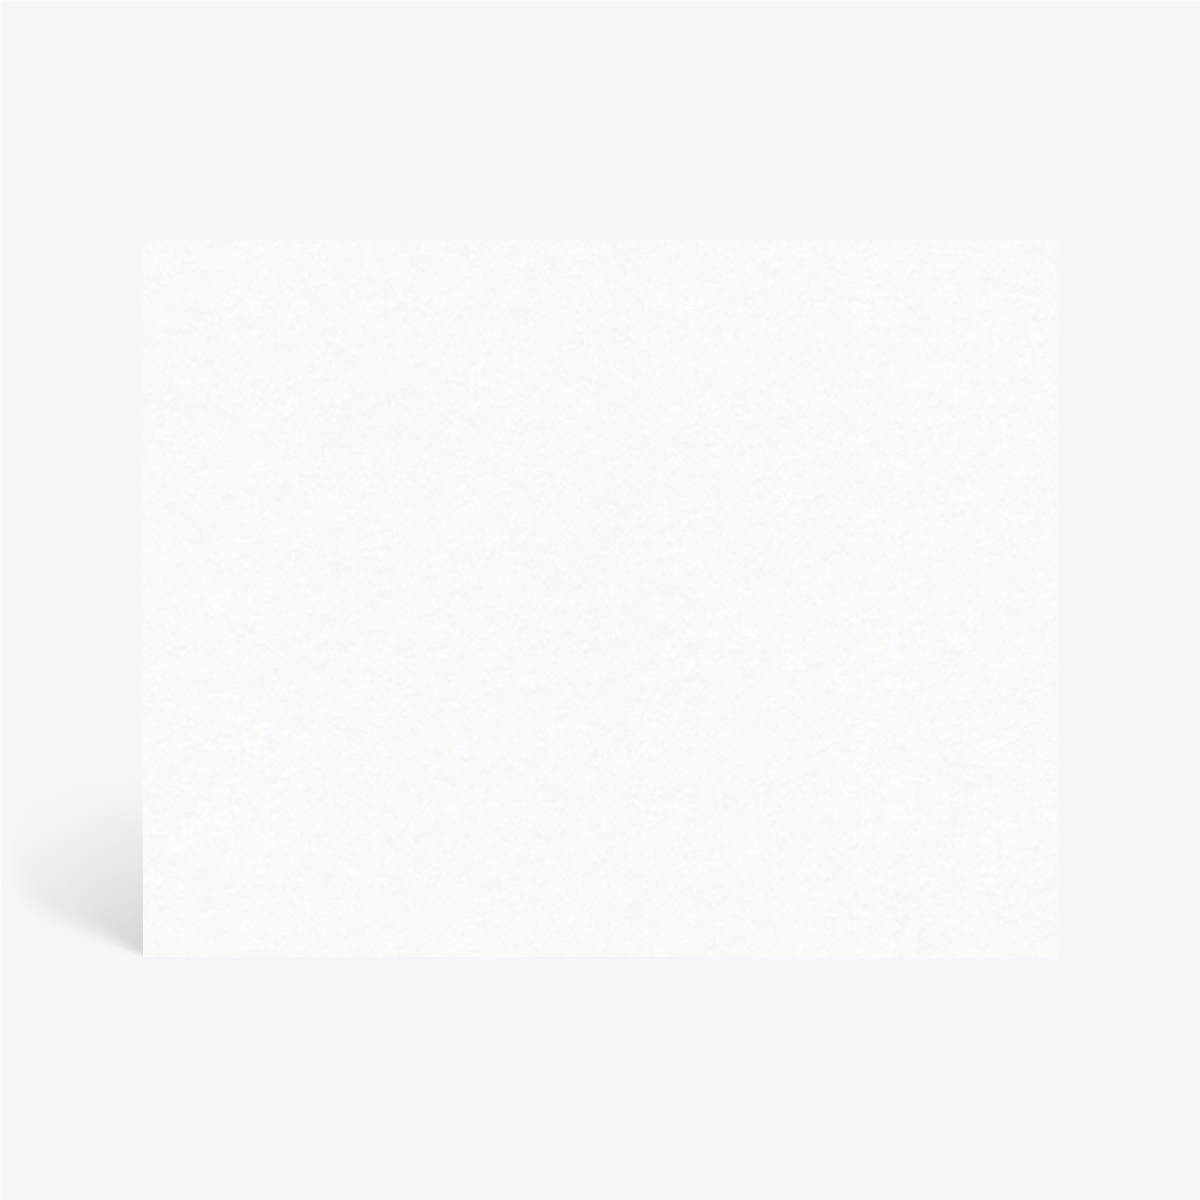 Https%3a%2f%2fwww.papier.com%2fproduct image%2f60505%2f29%2fthe minimalist 14479 back 1545923548.png?ixlib=rb 1.1